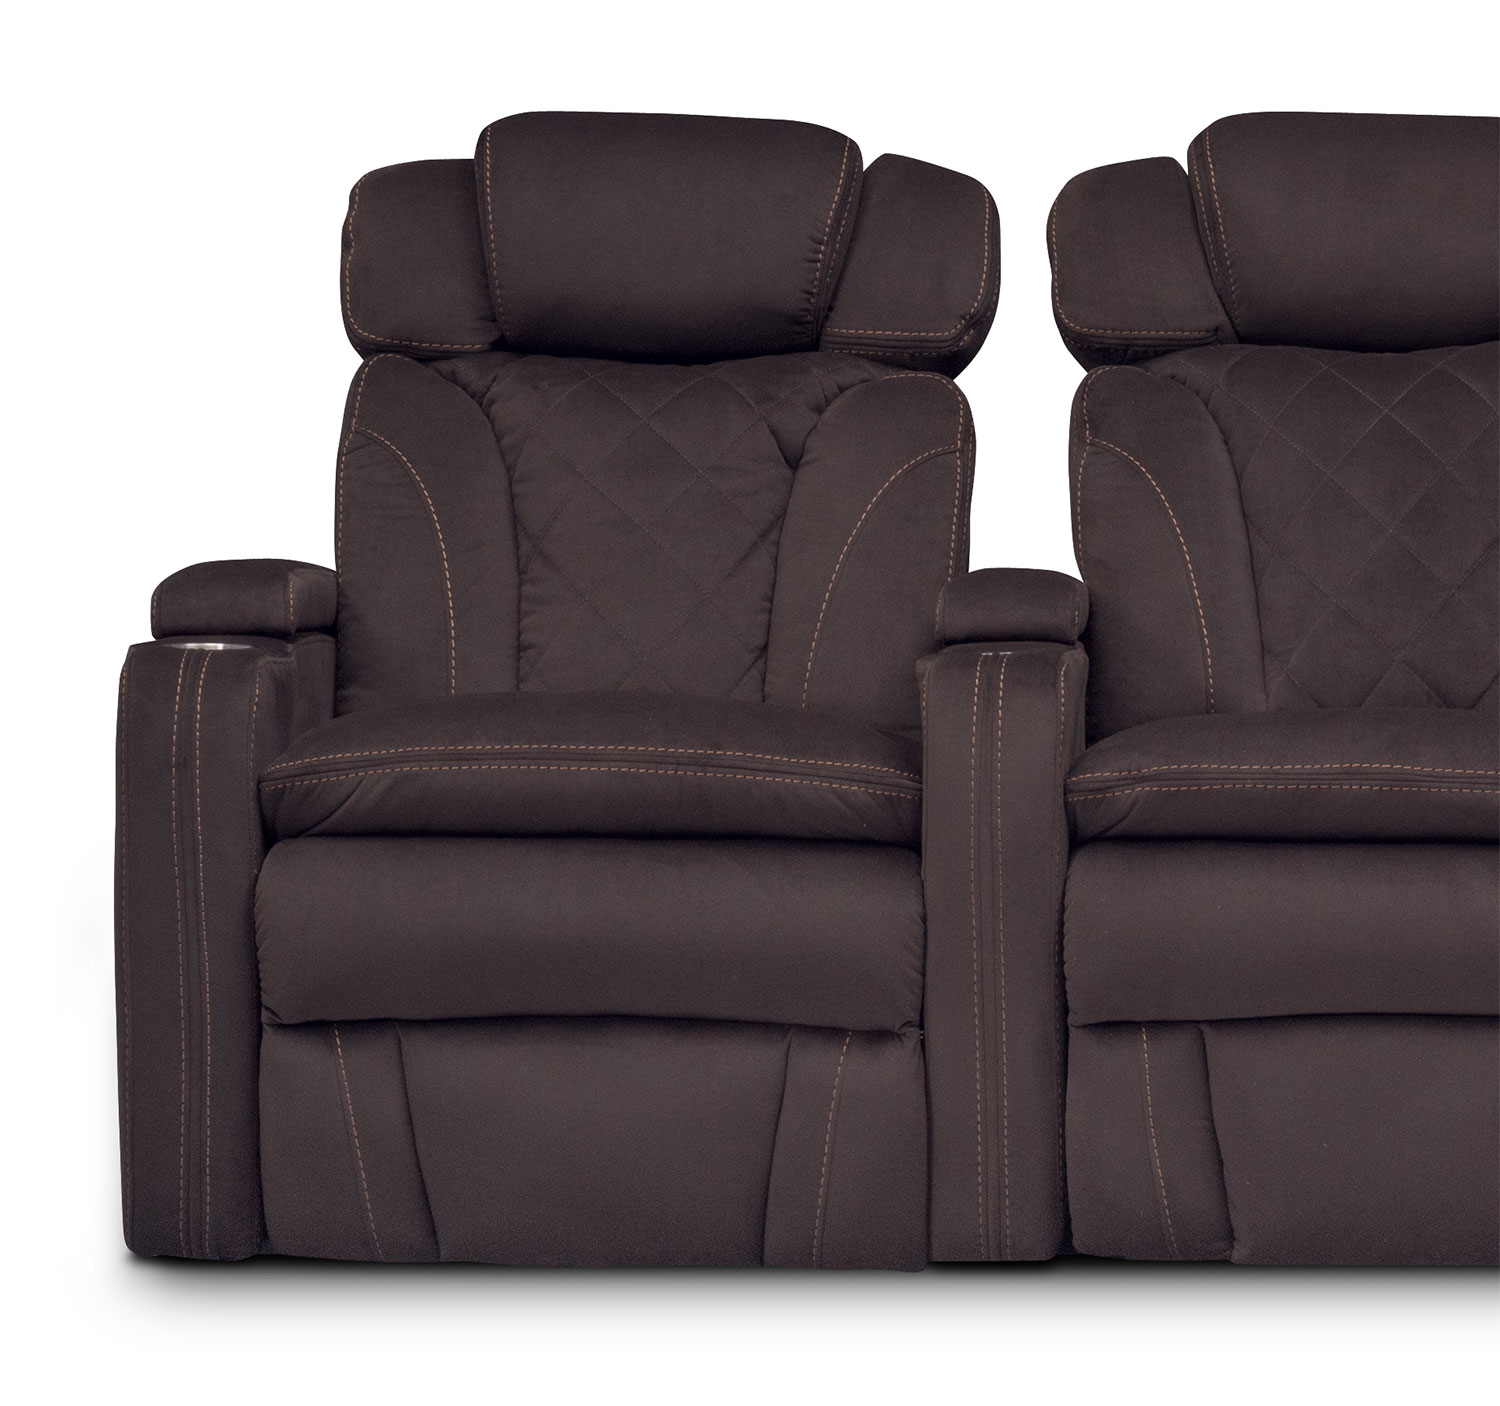 Fiero 3 Piece Power Reclining Home Theater Sectional